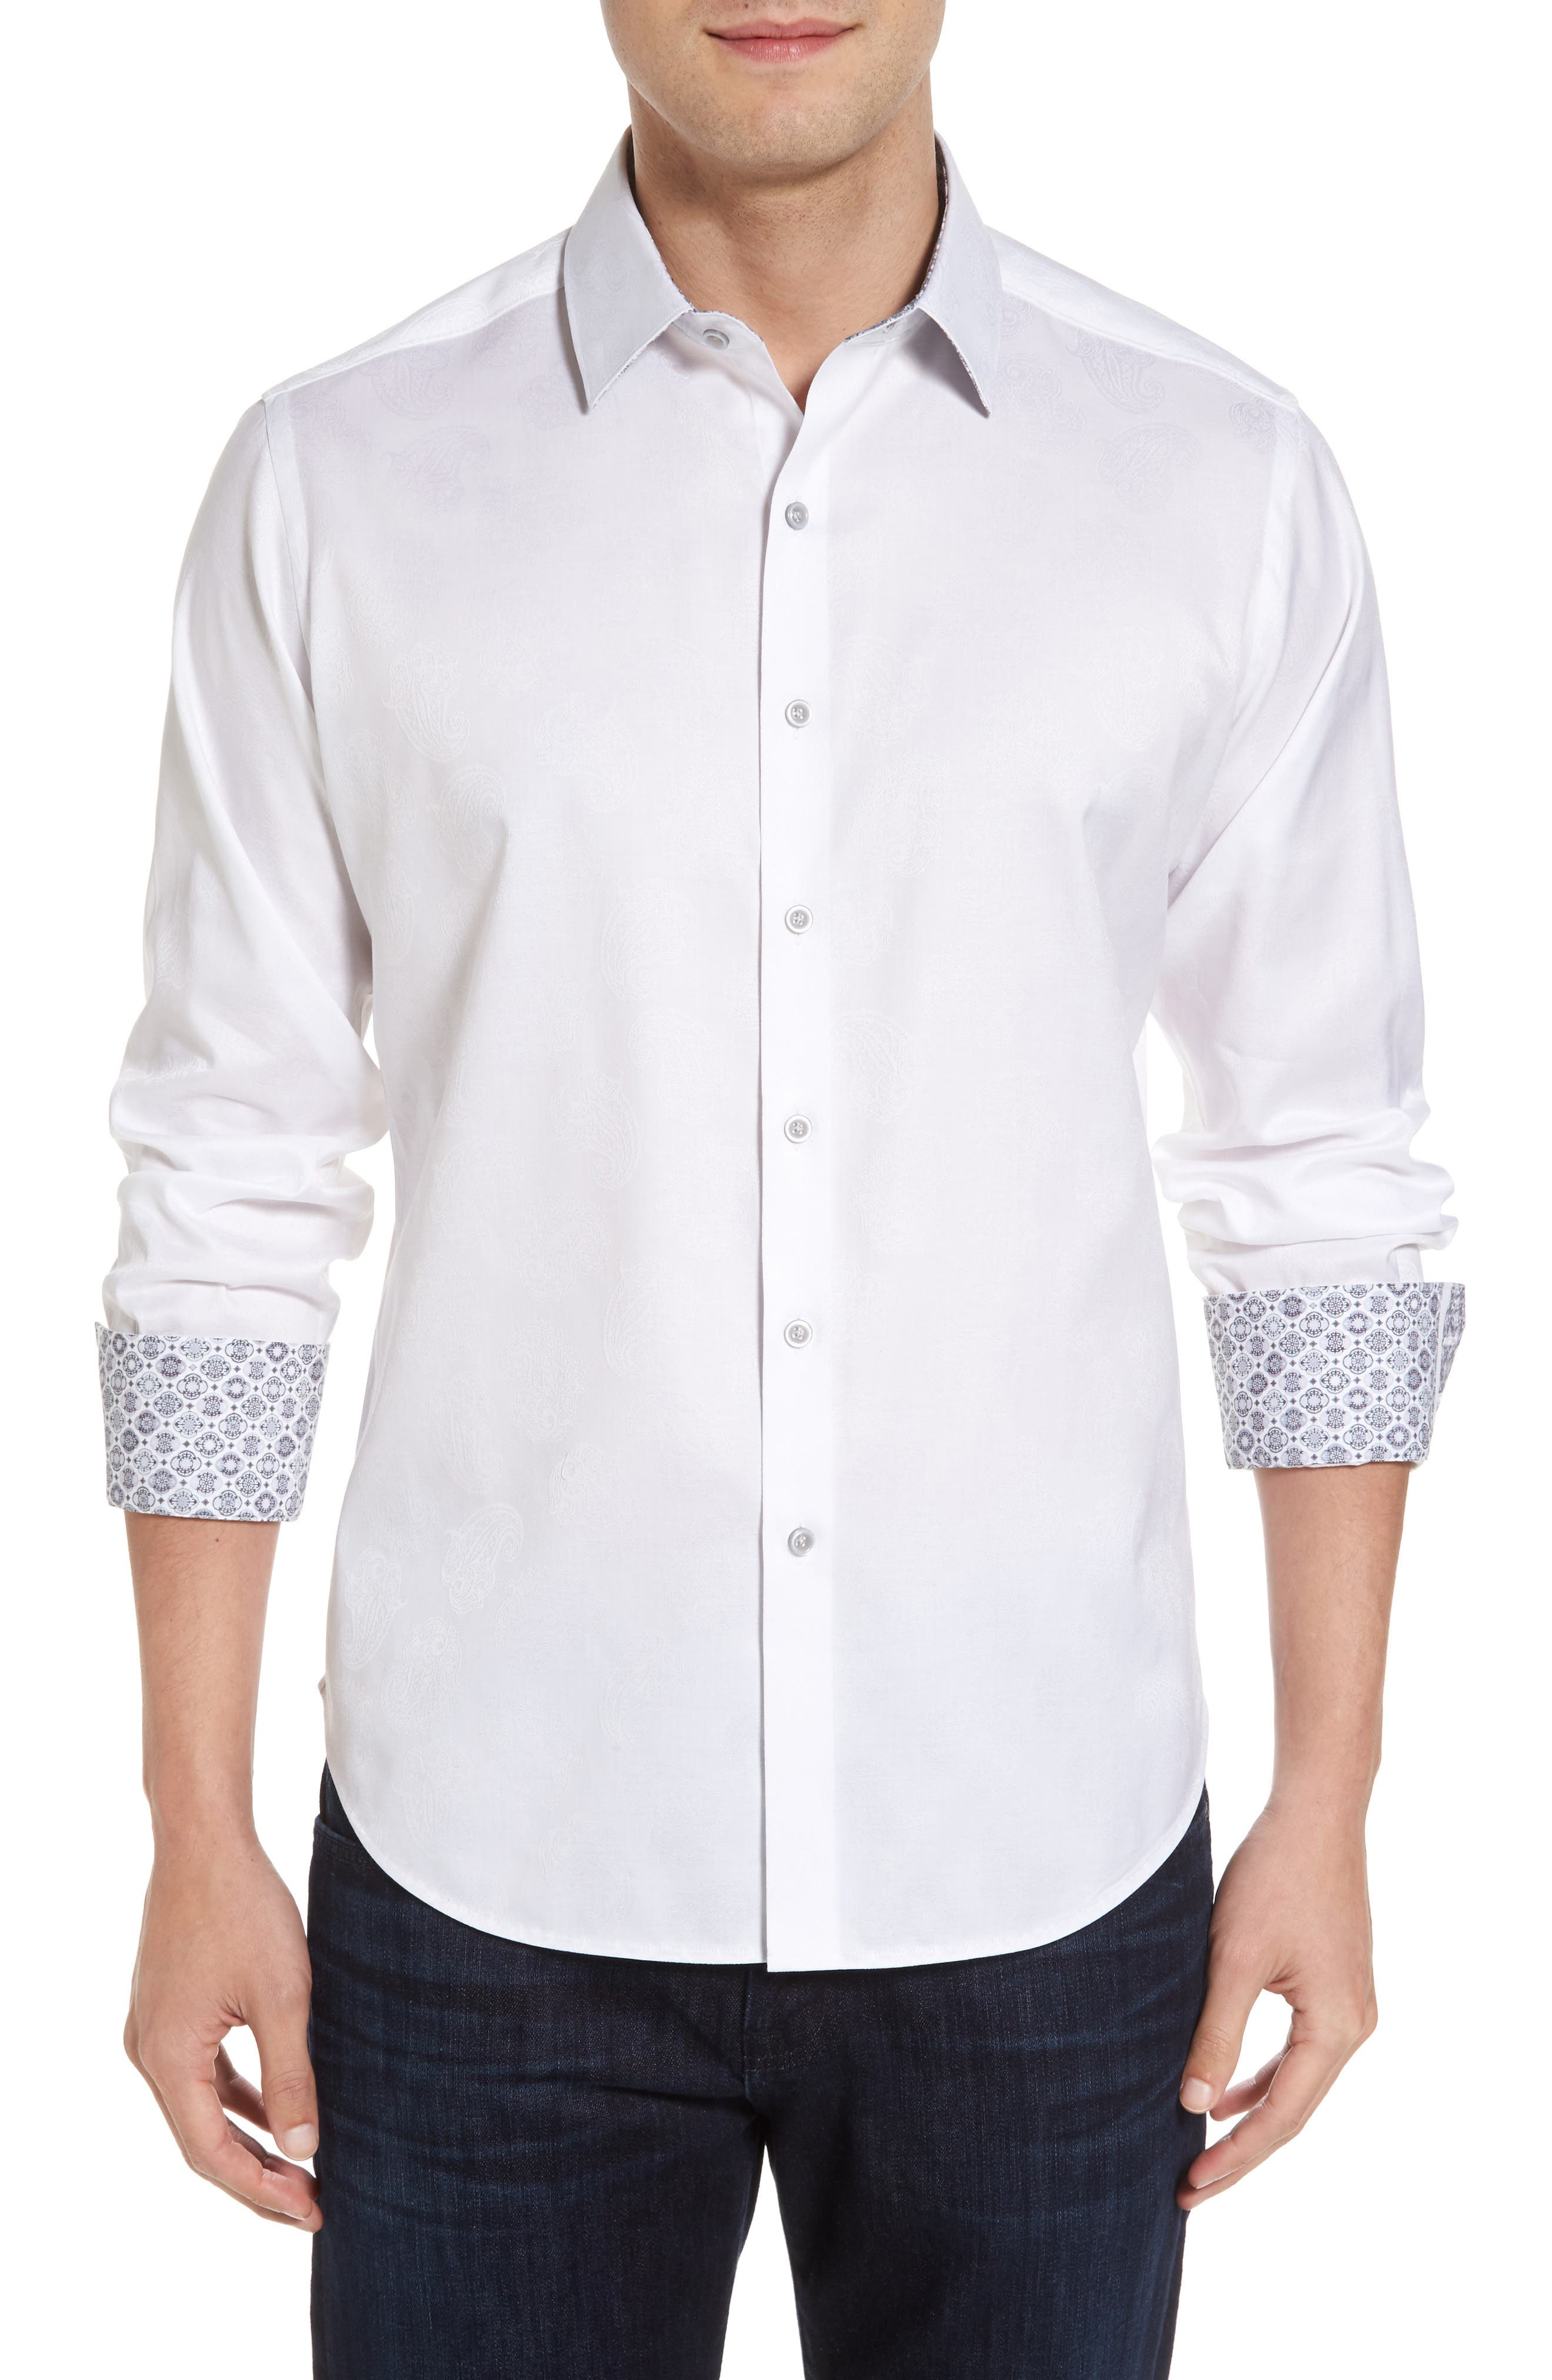 Robert Stack Haystack Regular Fit Jacquard Sport Shirt (Tall)